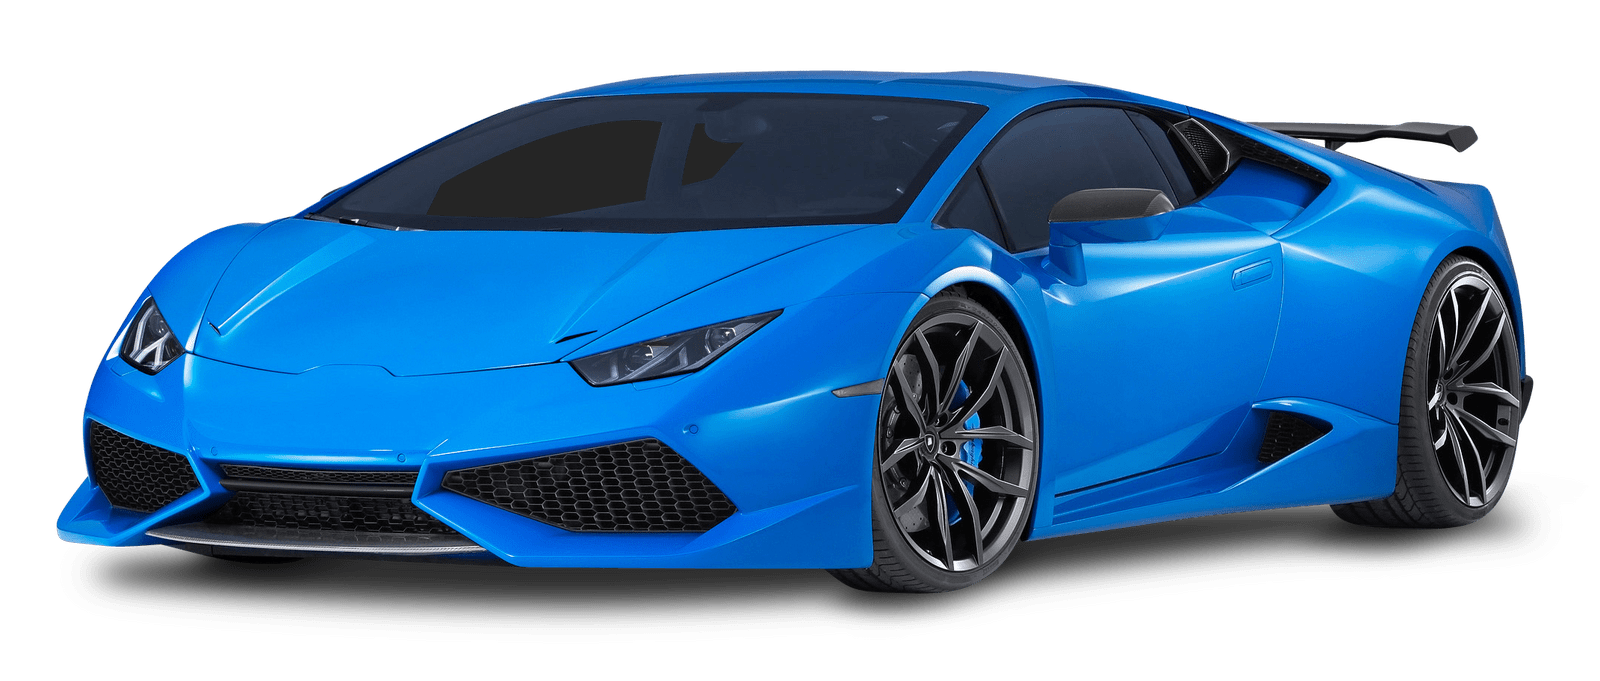 Used Lamborghini Huracan 610-4 in North Miami Beach